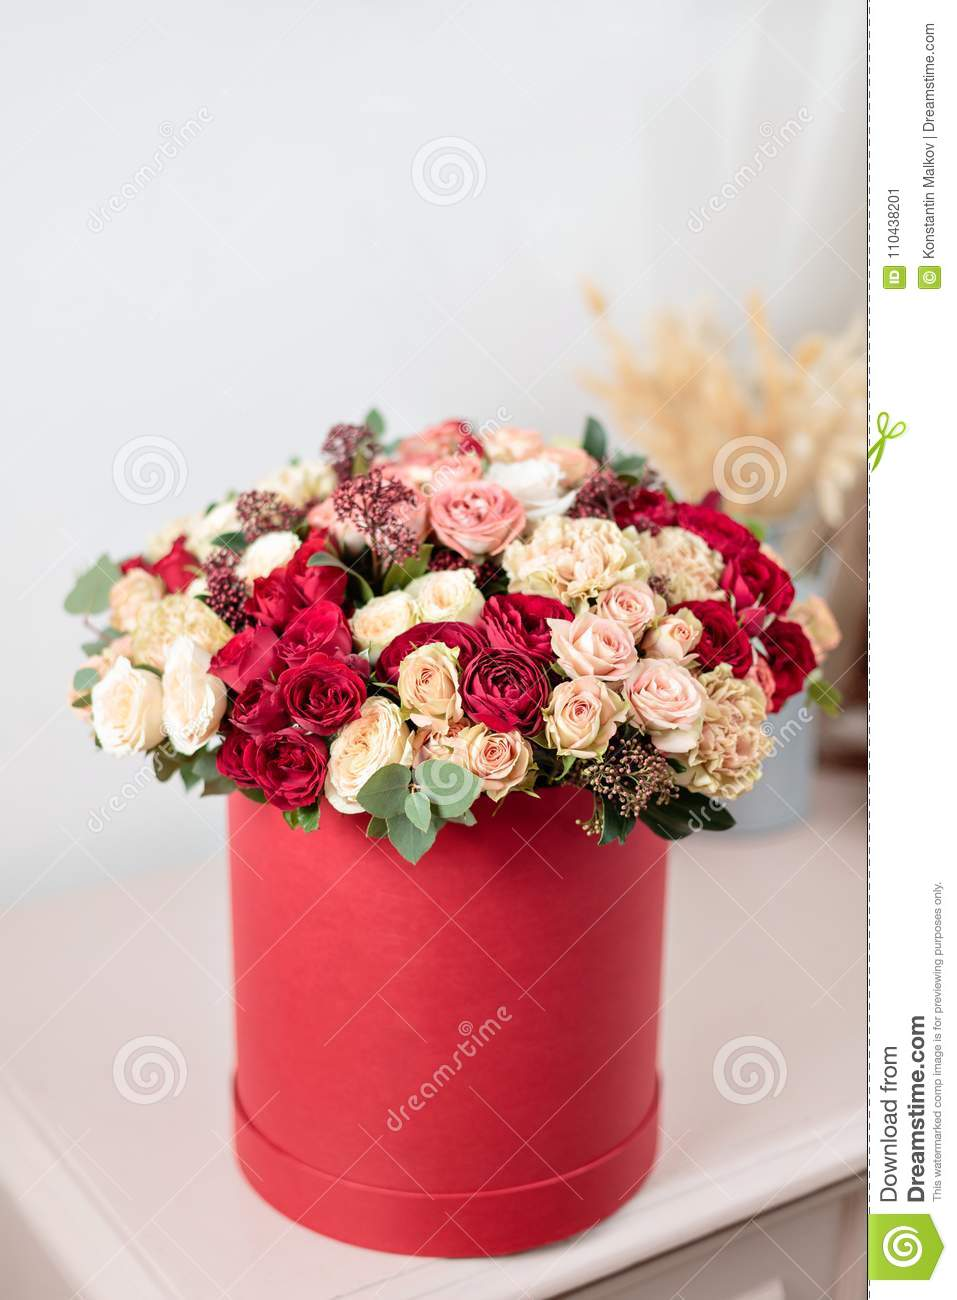 Beautiful Luxury Bouquet Of Mixed Flowers In Red Box. The Work Of ...